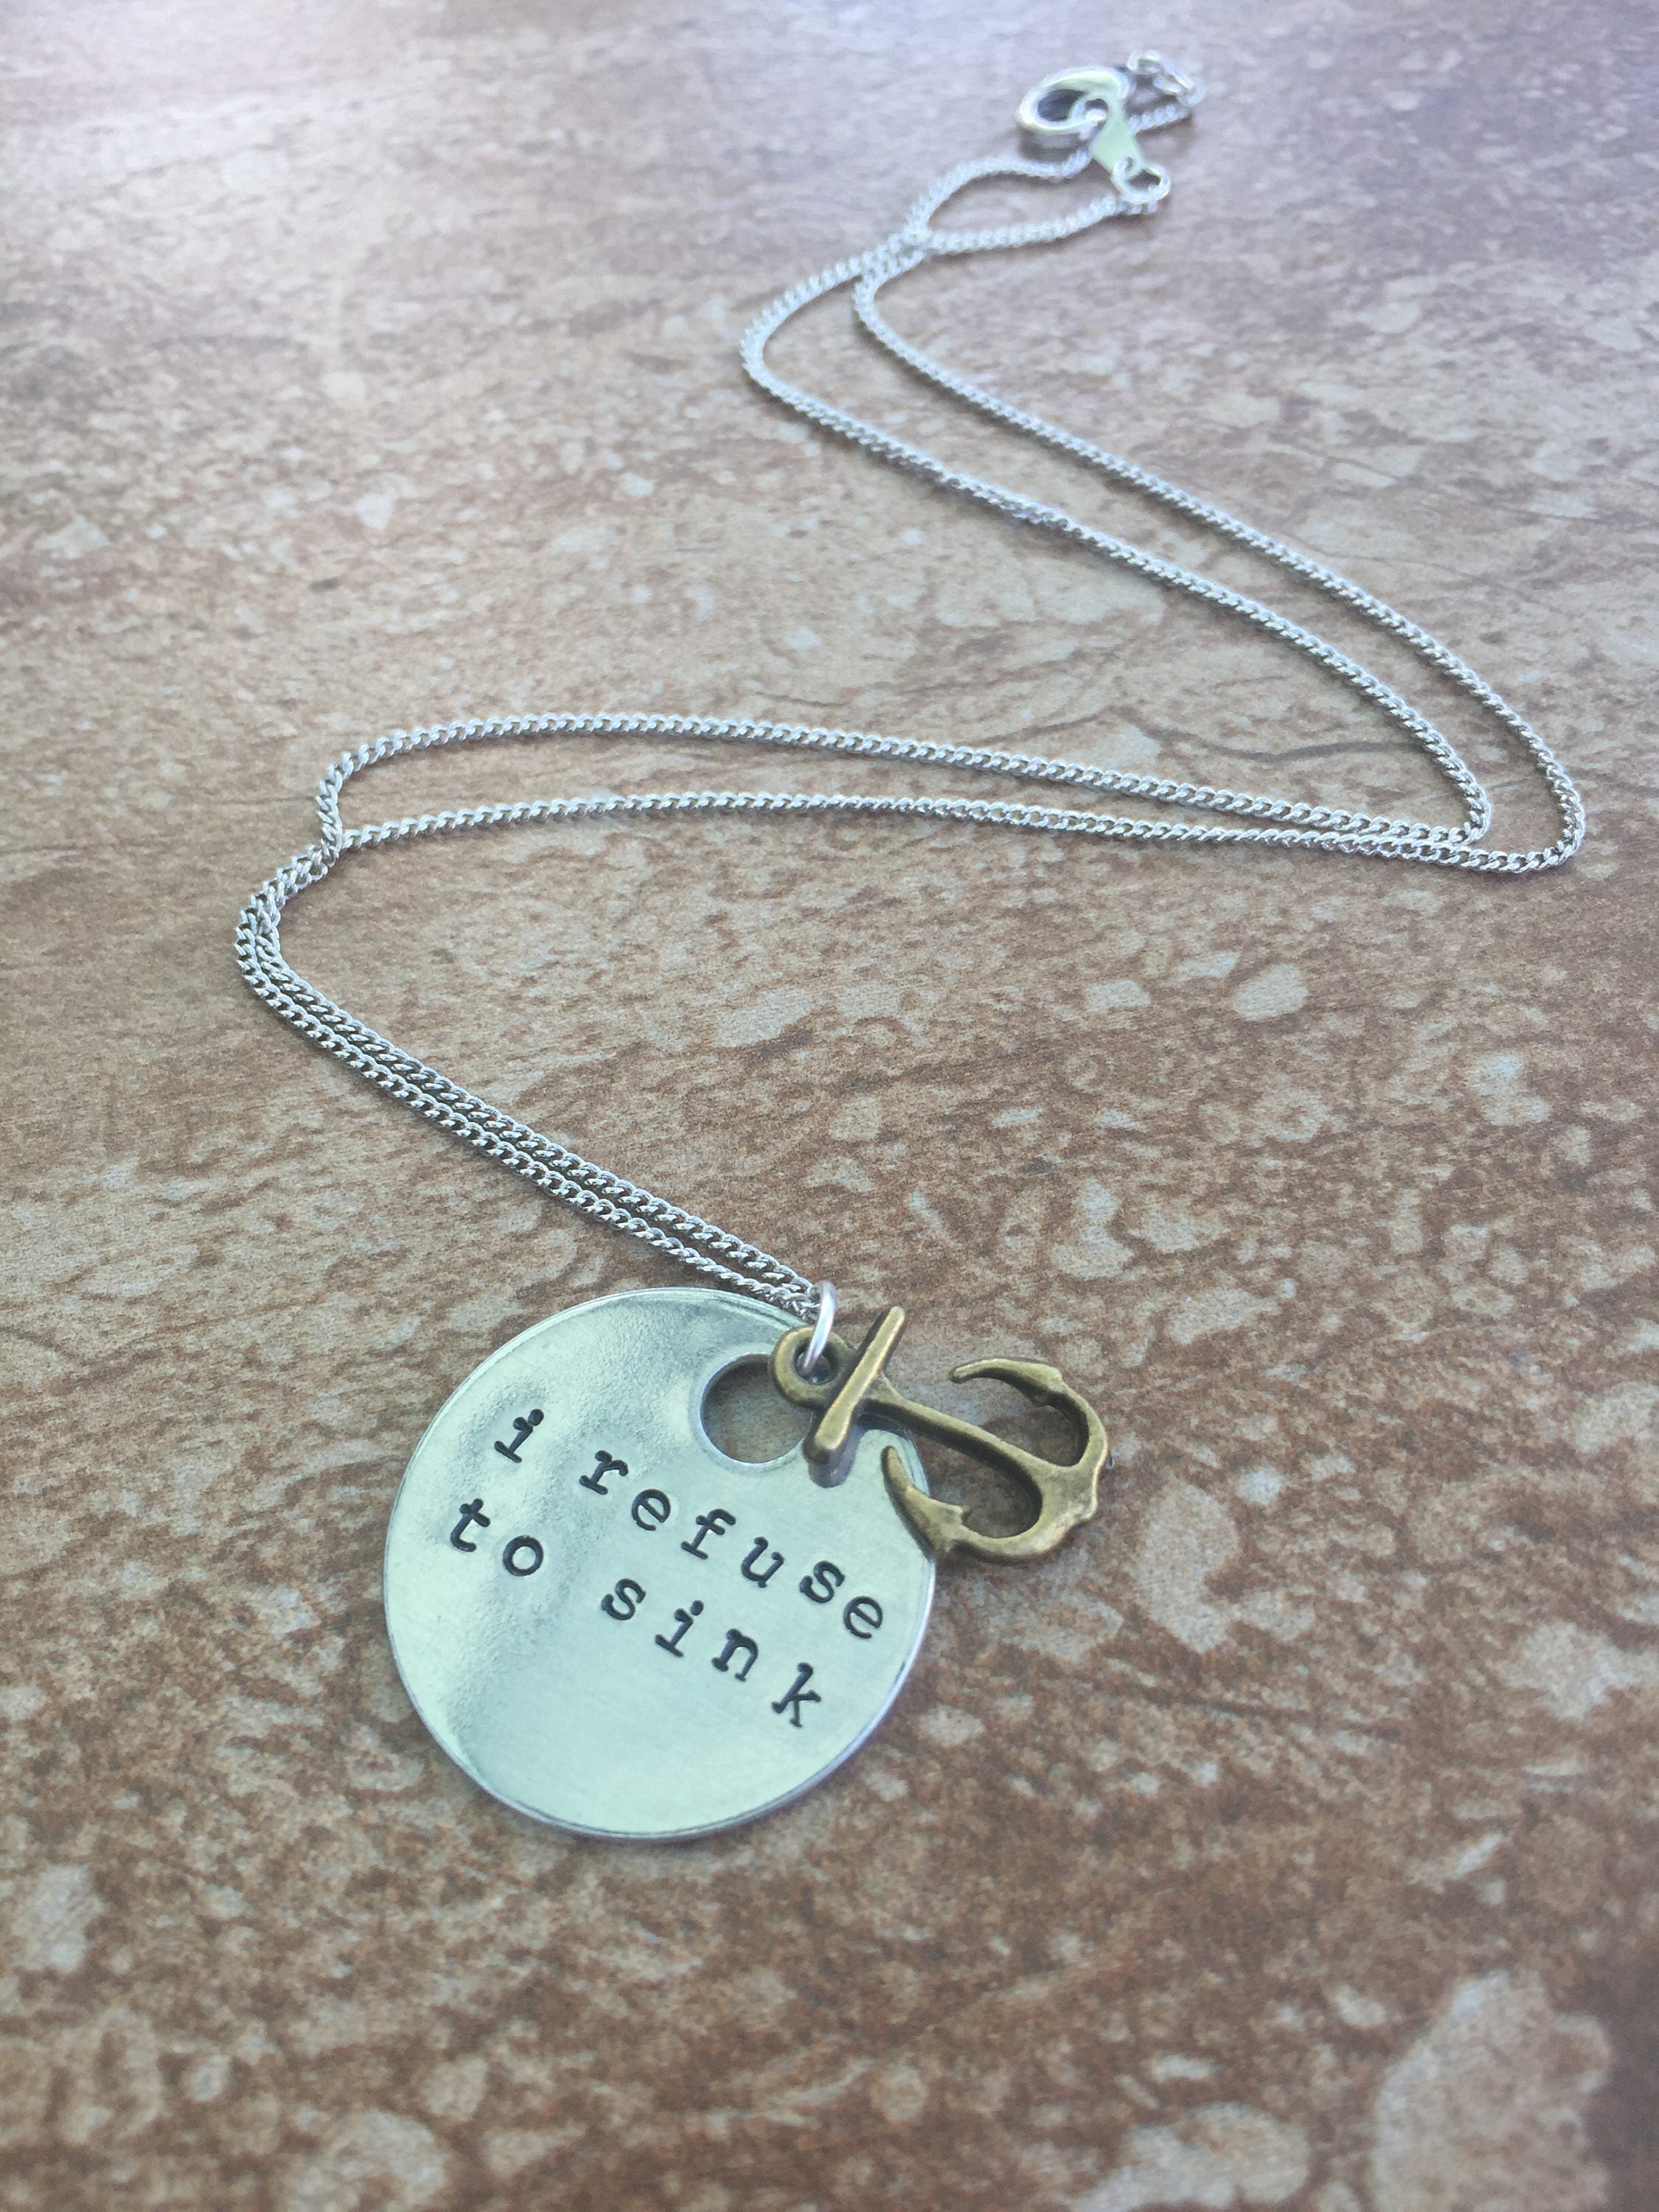 I Refuse To Sink Hand Stamped Necklace Or Key Chain Etsy